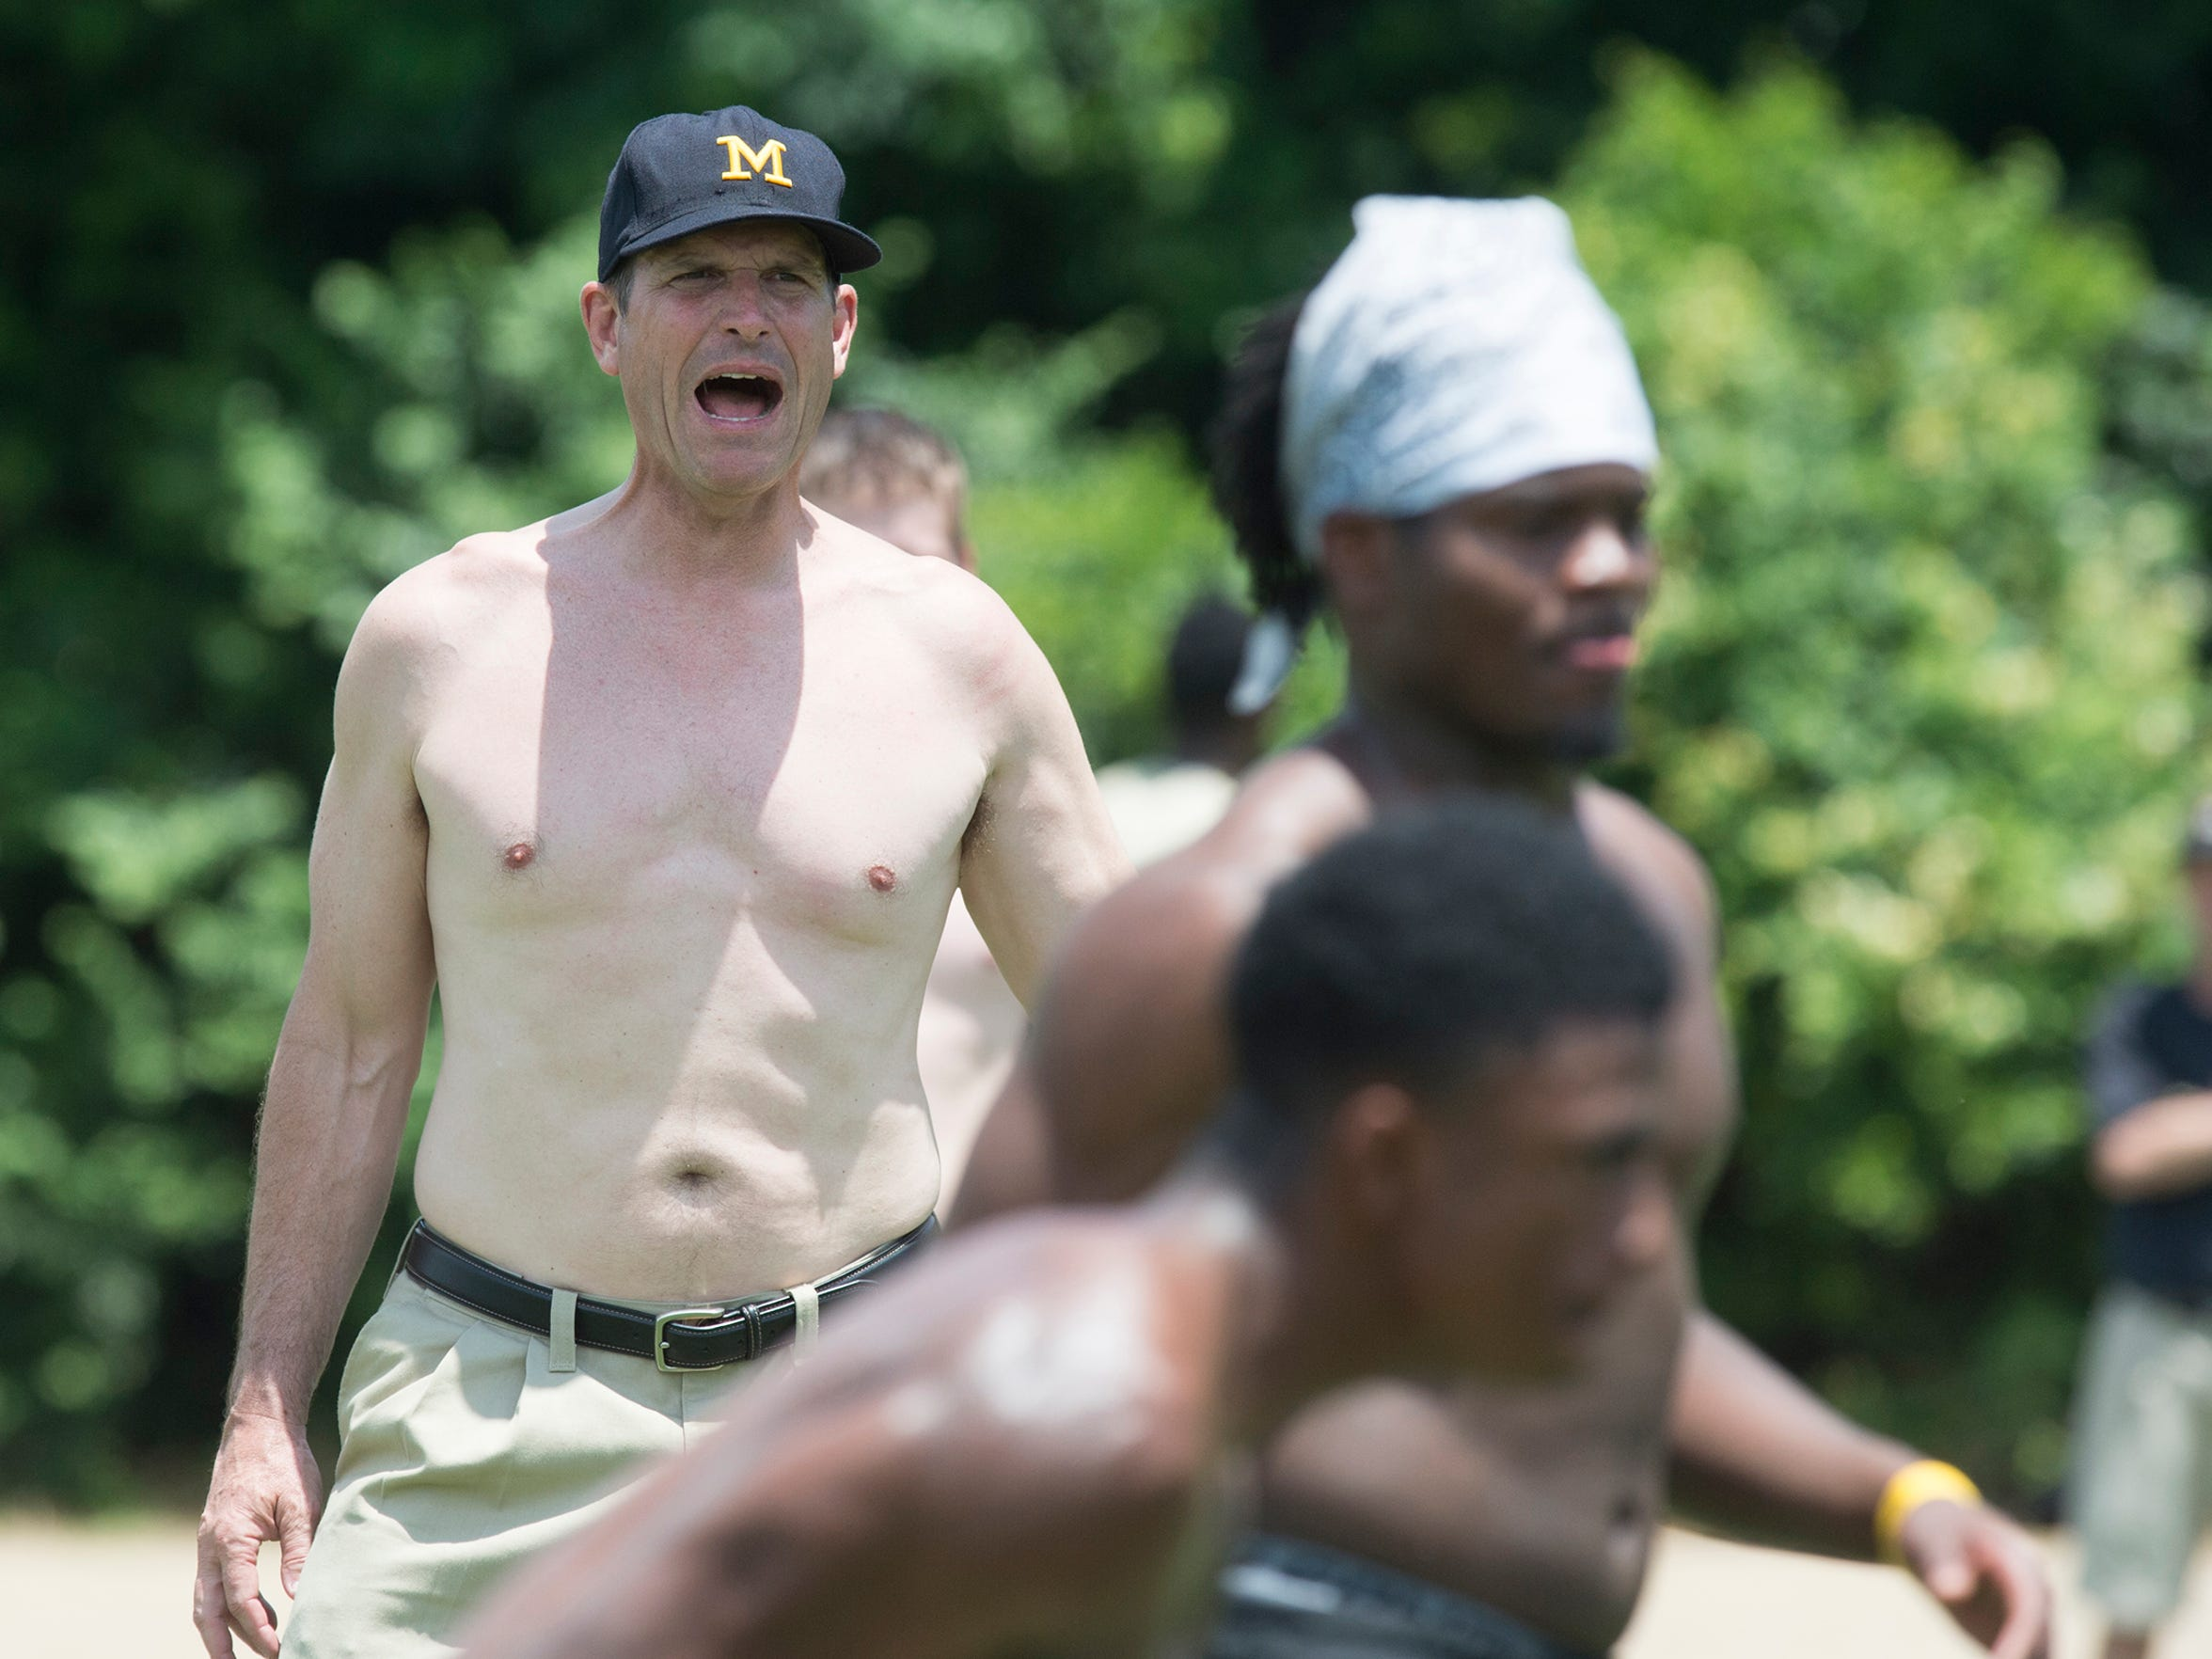 June 5, 2015: Michigan football coach Jim Harbaugh plays shirtless with participants during the Coach Jim Harbaugh's Elite Summer Football Camp at Prattville High School in Prattville, Ala.